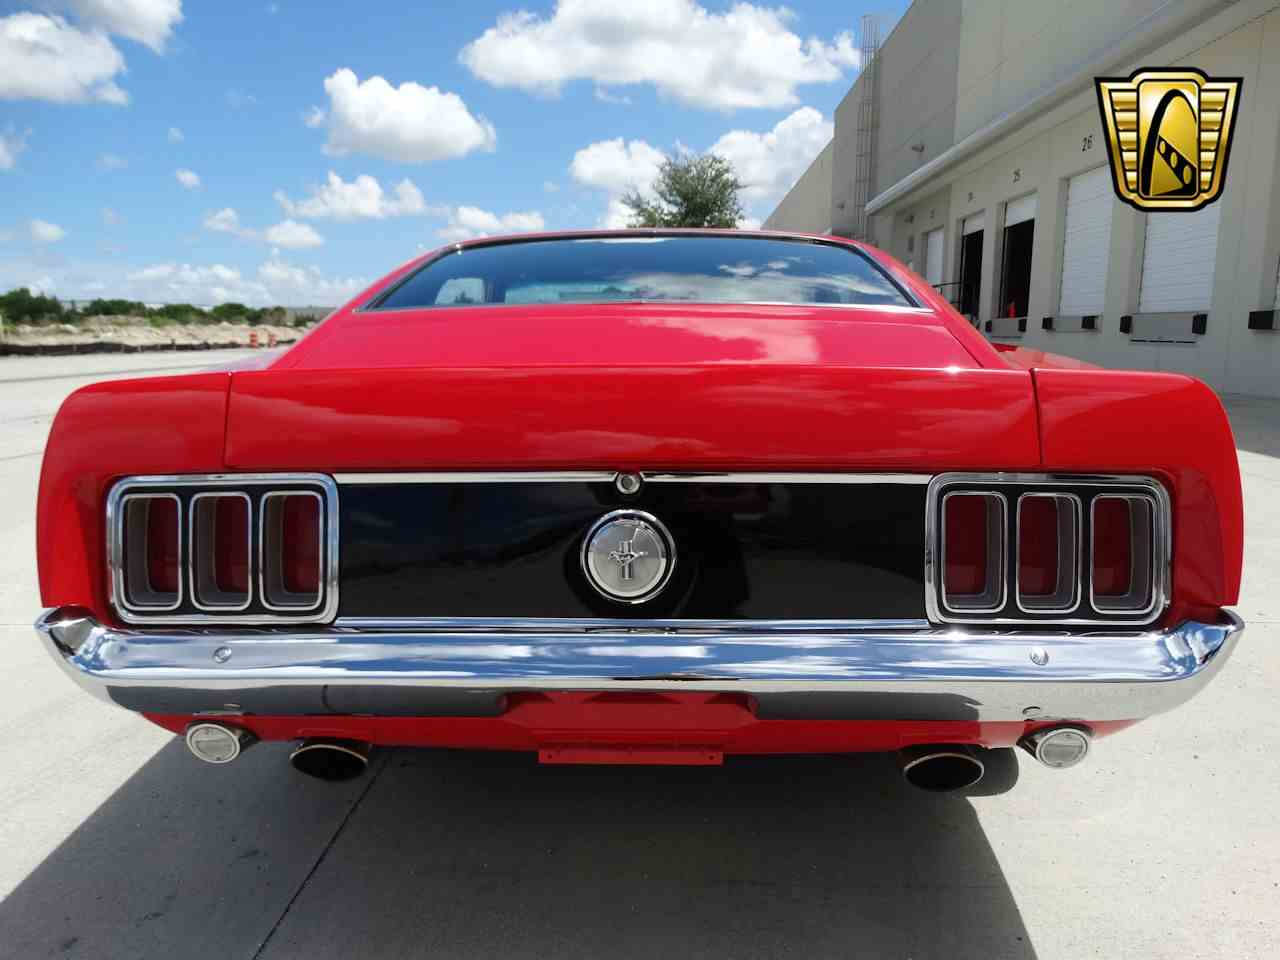 Large Picture of '70 Ford Mustang located in Florida - $60,000.00 Offered by Gateway Classic Cars - Fort Lauderdale - LG4A